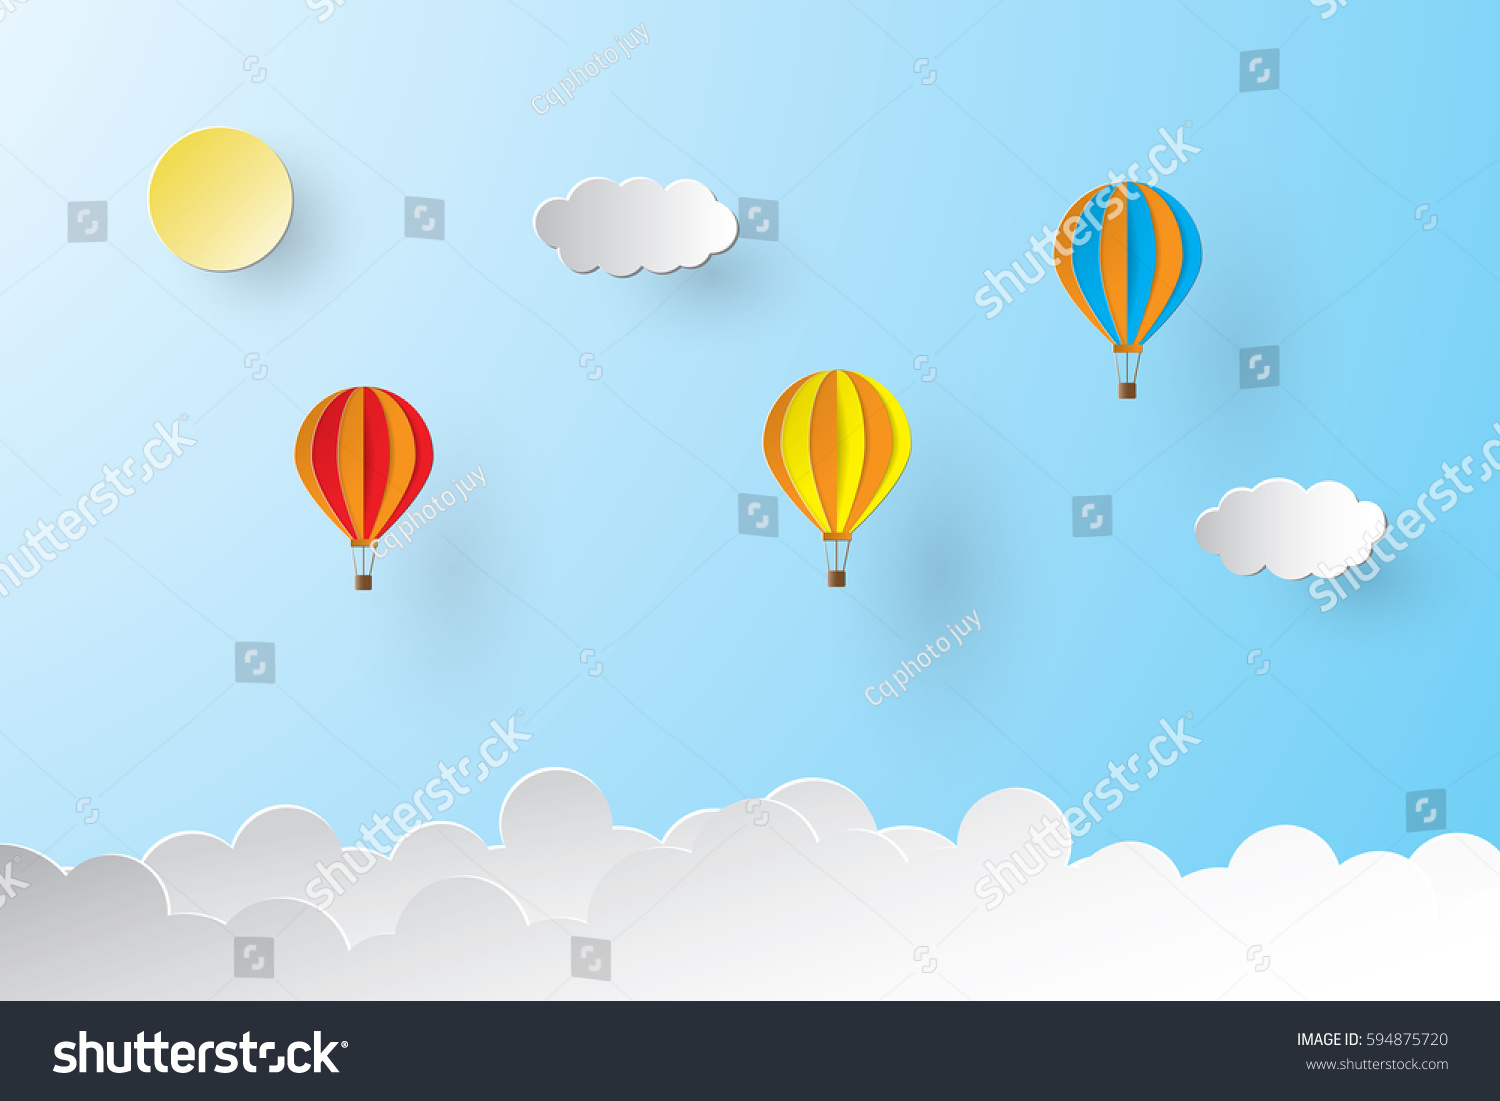 Origami made colorful hot air balloon stock vector 594875720 origami made colorful hot air balloon and cloud paper art style jeuxipadfo Choice Image